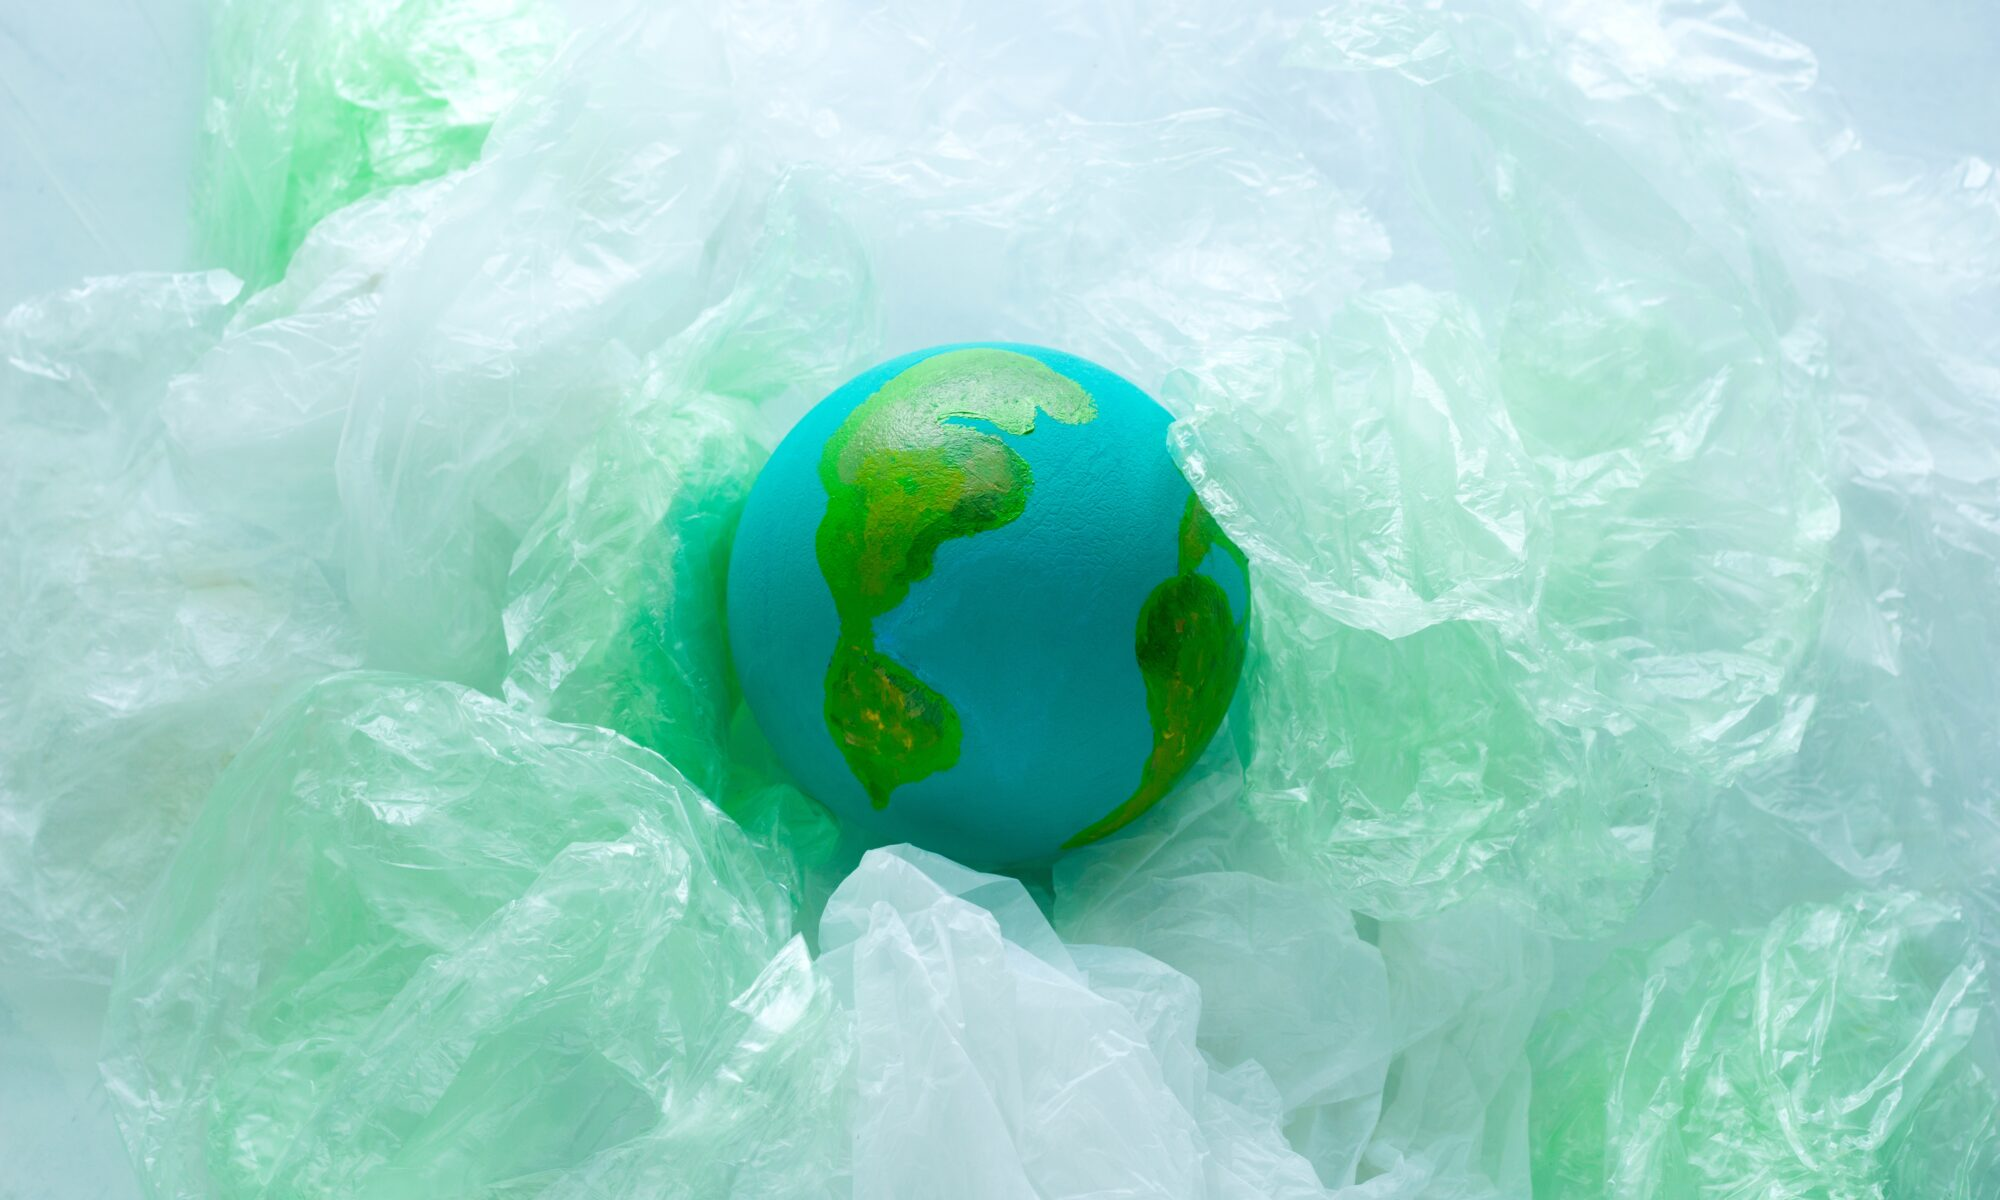 top view of a small model of the Earth planet among plastic bags, environment, global pollution concept, earth day